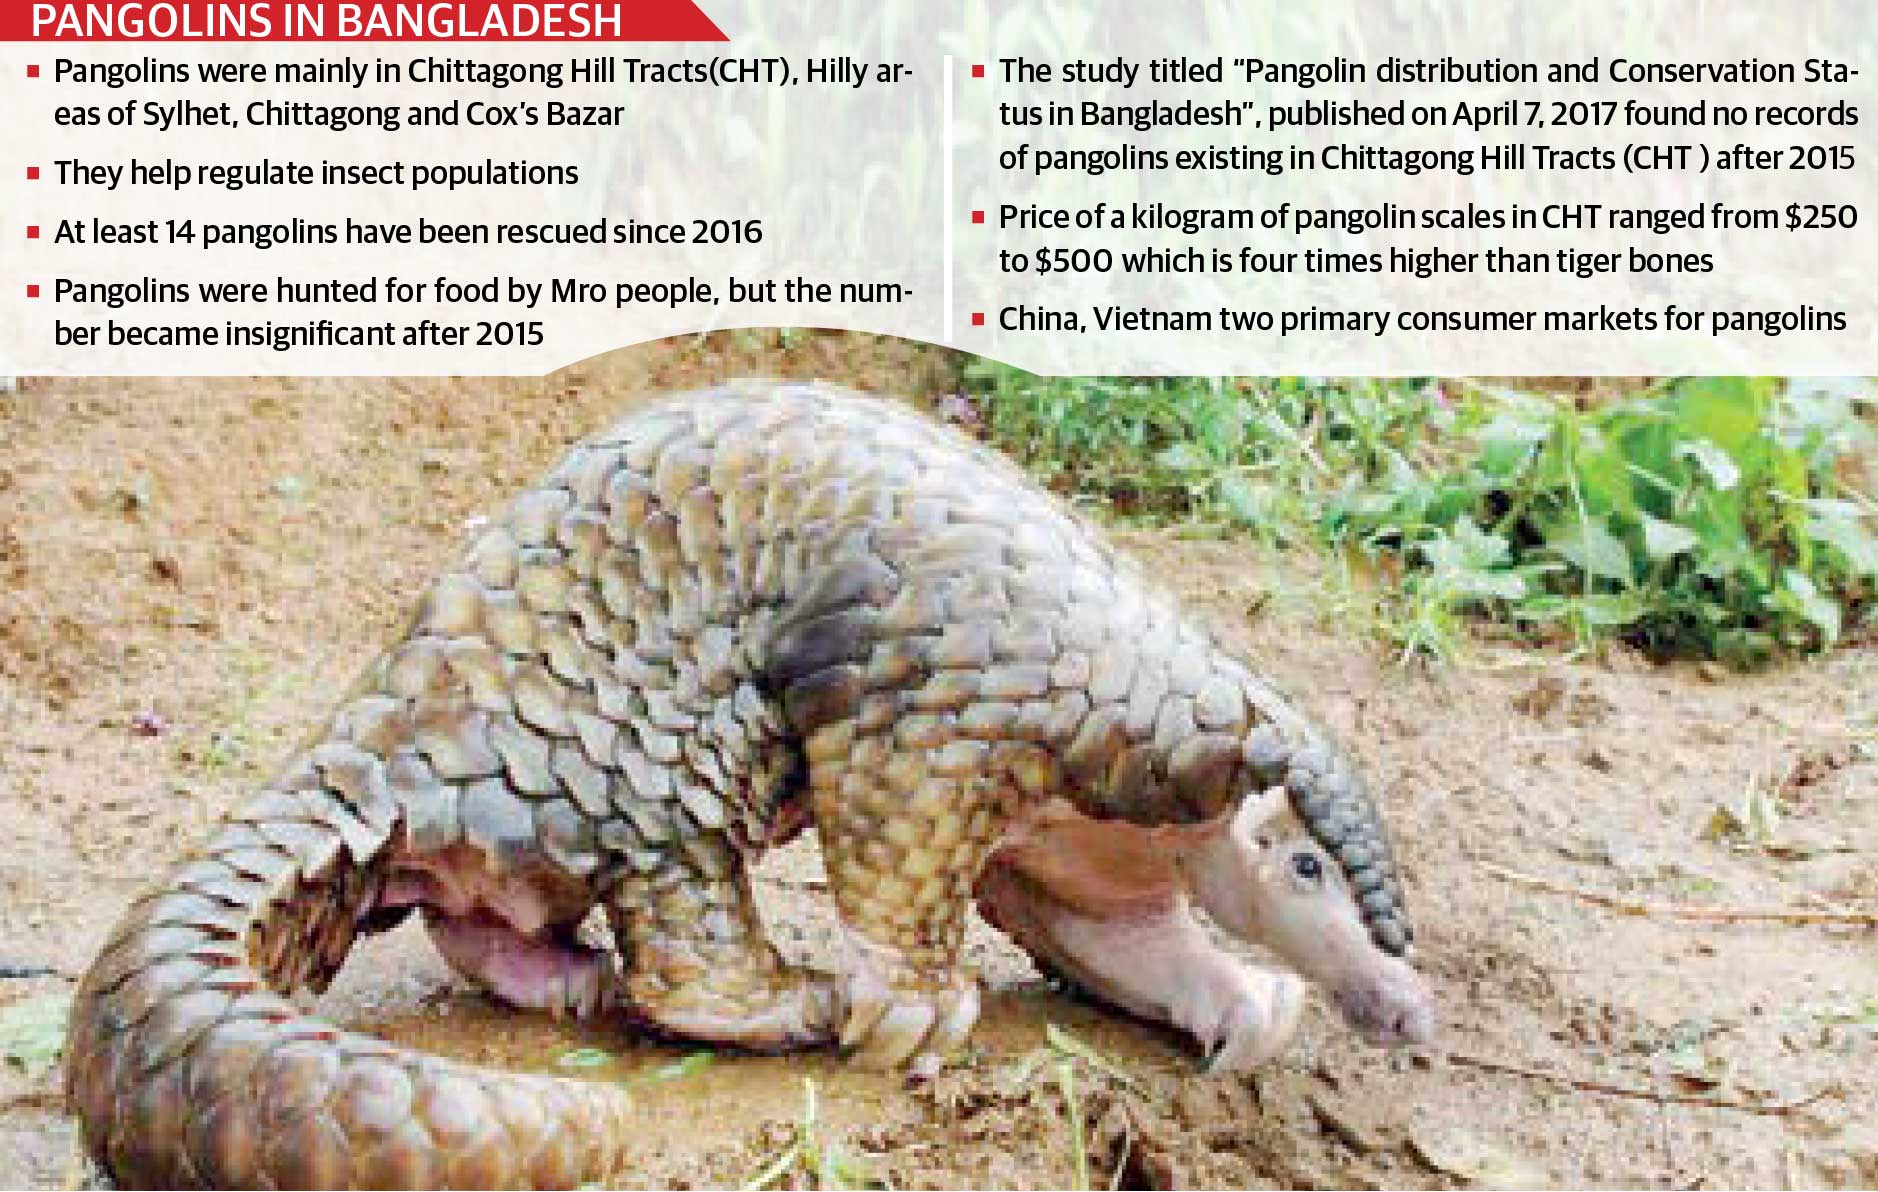 Will pangolins survive in Bangladesh?